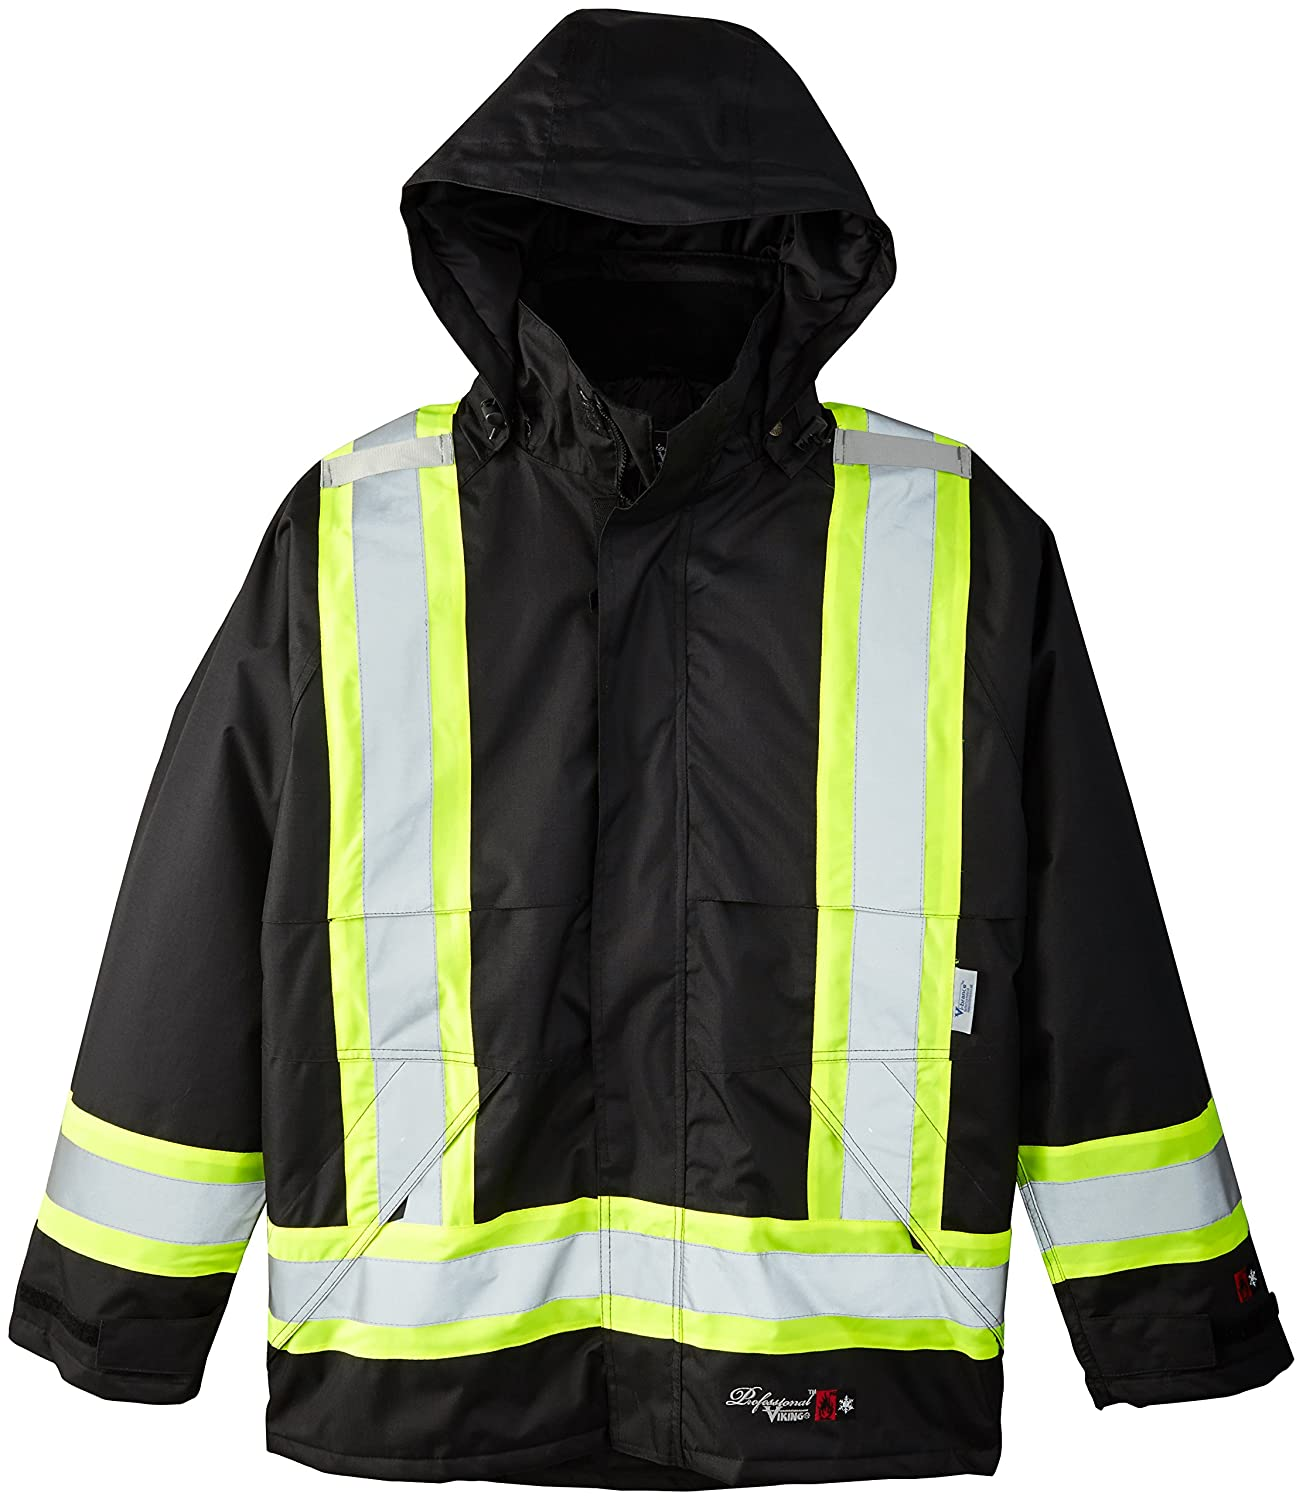 Viking Professional Insulated Journeyman FR Waterproof Flame Resistant Jacket 3907FRWJ